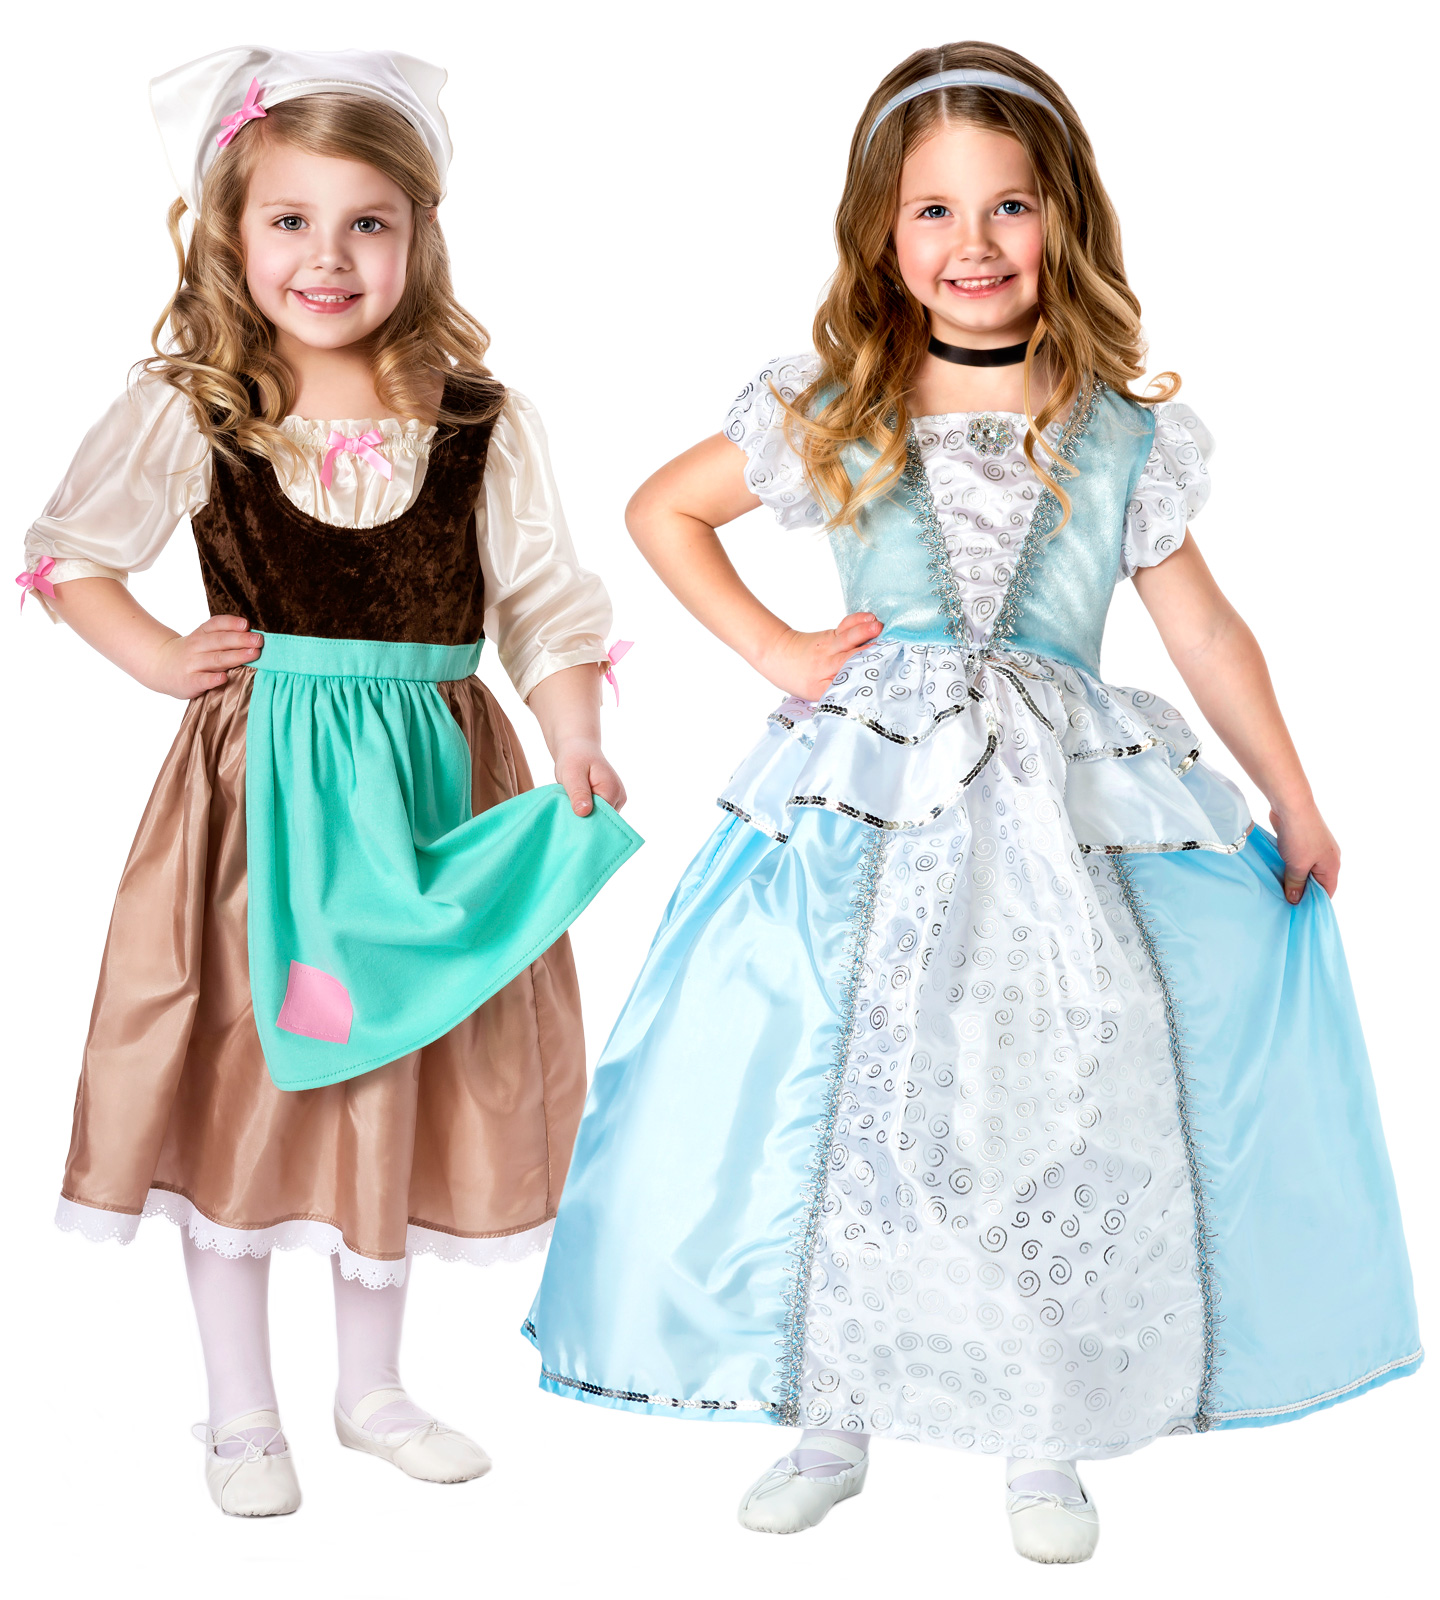 dress up sets for your kids